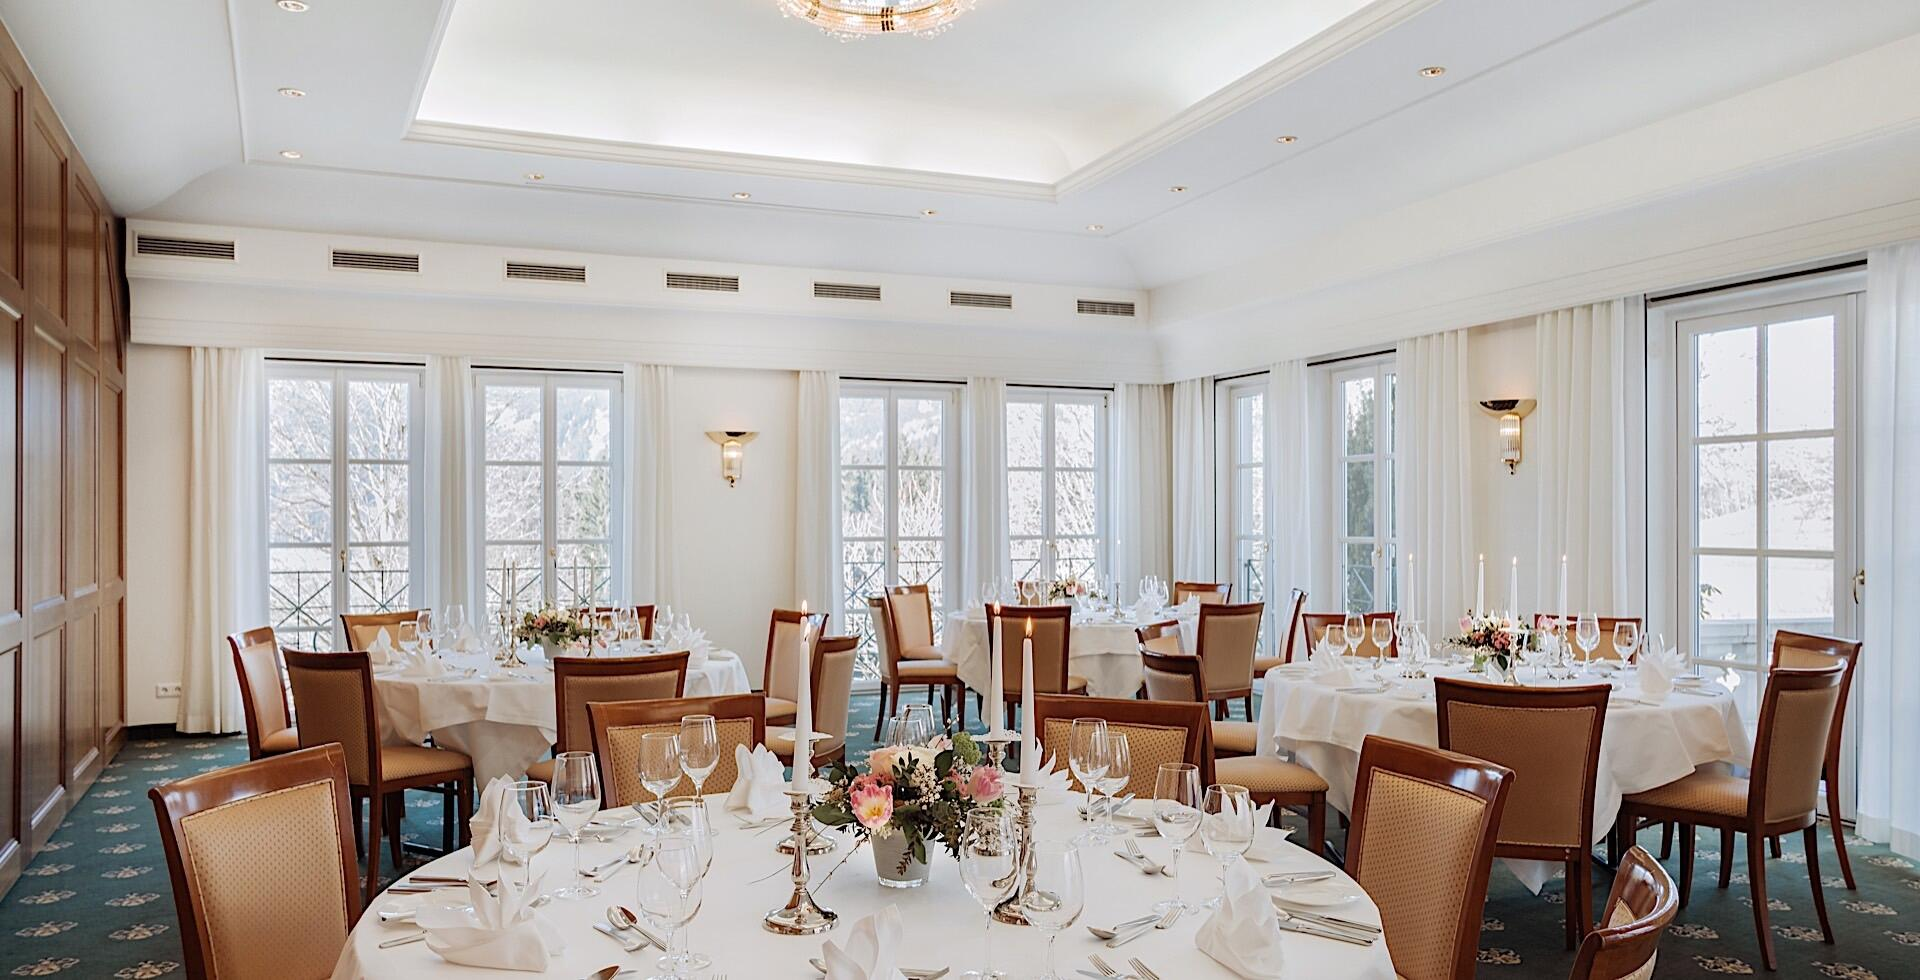 Function Room Grimming III at Romantik Hotel Schloss Pichlarn, A